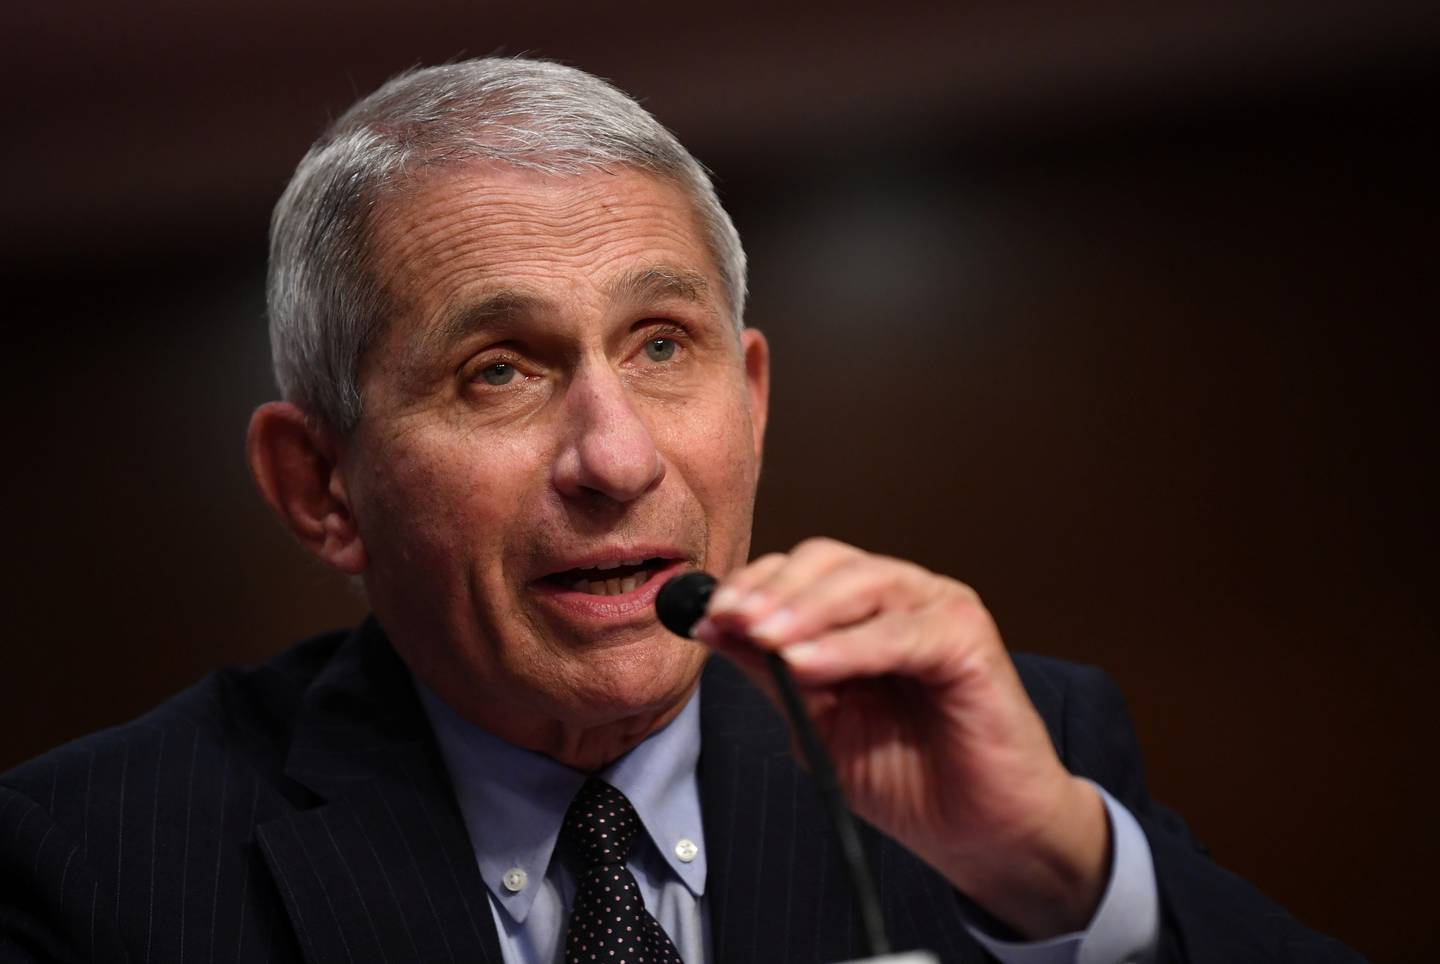 Dr Anthony Fauci, director of the National Institute for Allergy and Infectious Diseases, testifies during a Senate Health, Education, Labor and Pensions (HELP) Committee hearing on Capitol Hill in Washington, U.S., June 30, 2020. Kevin Dietsch/Pool via REUTERS